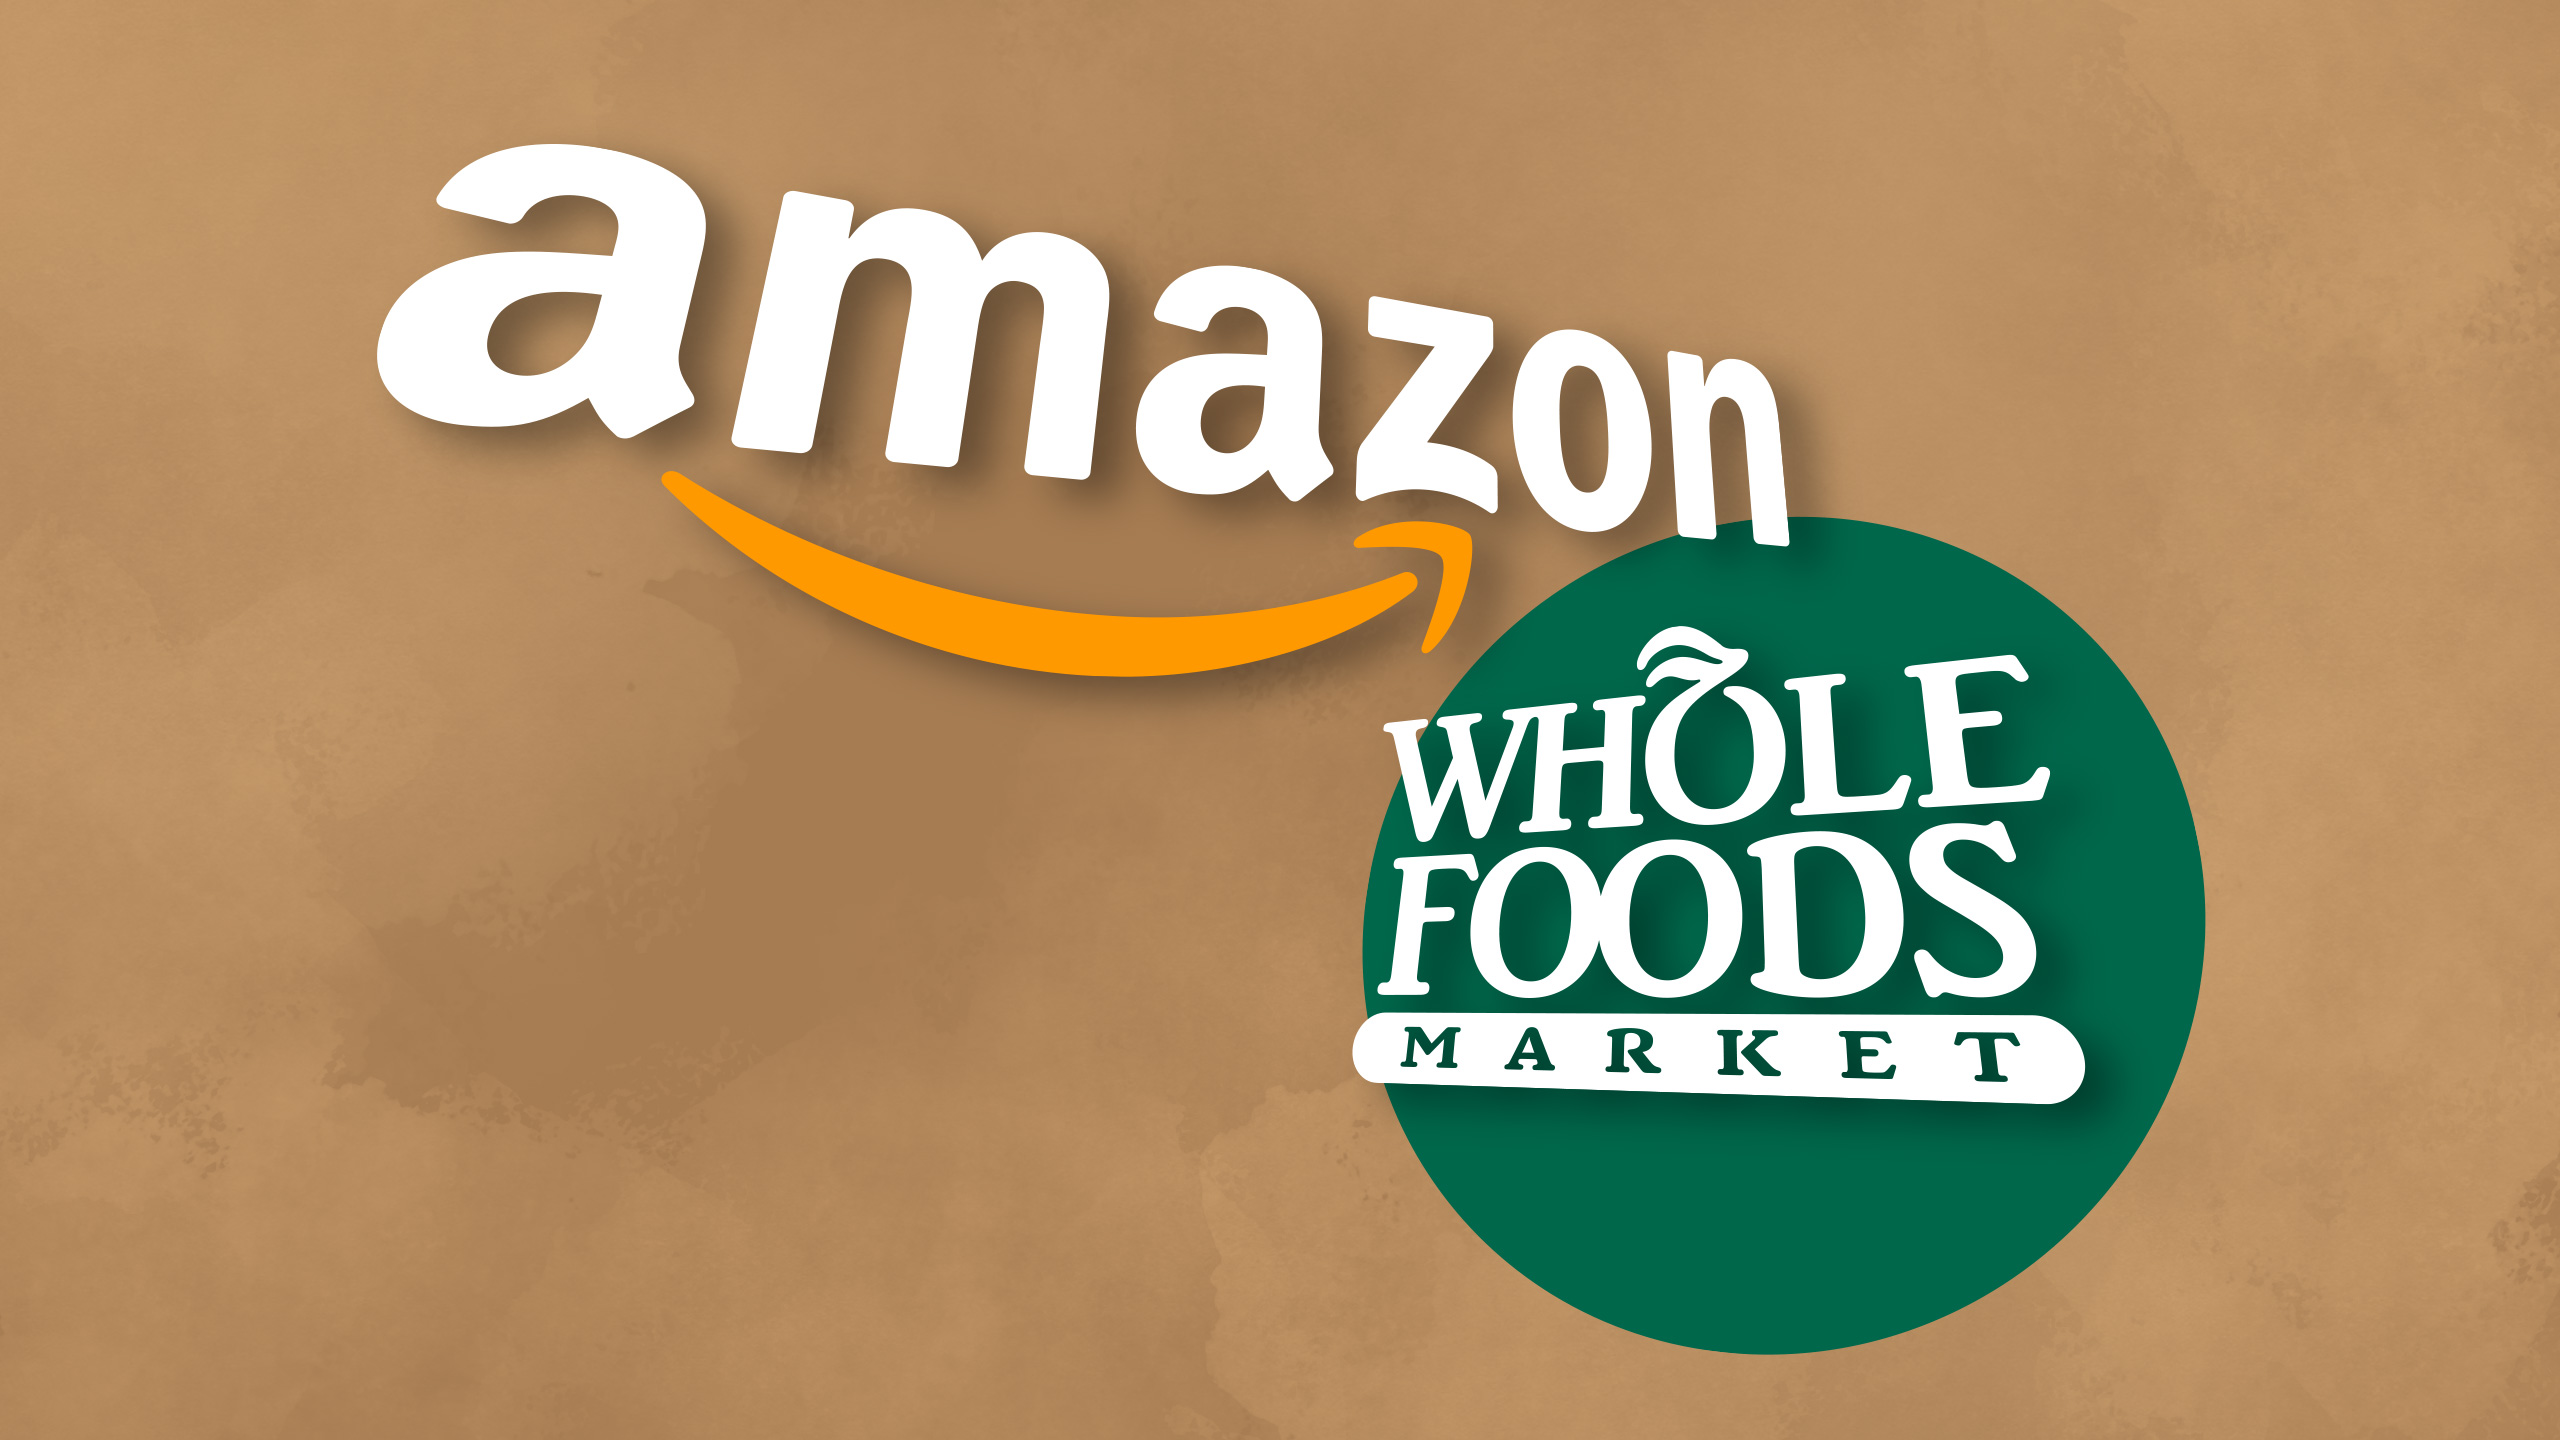 Amazon Prime members now get 10% off sale items at Whole Foods plus other weekly discounts		 		 	Sarah Perez         @	       	11 hours